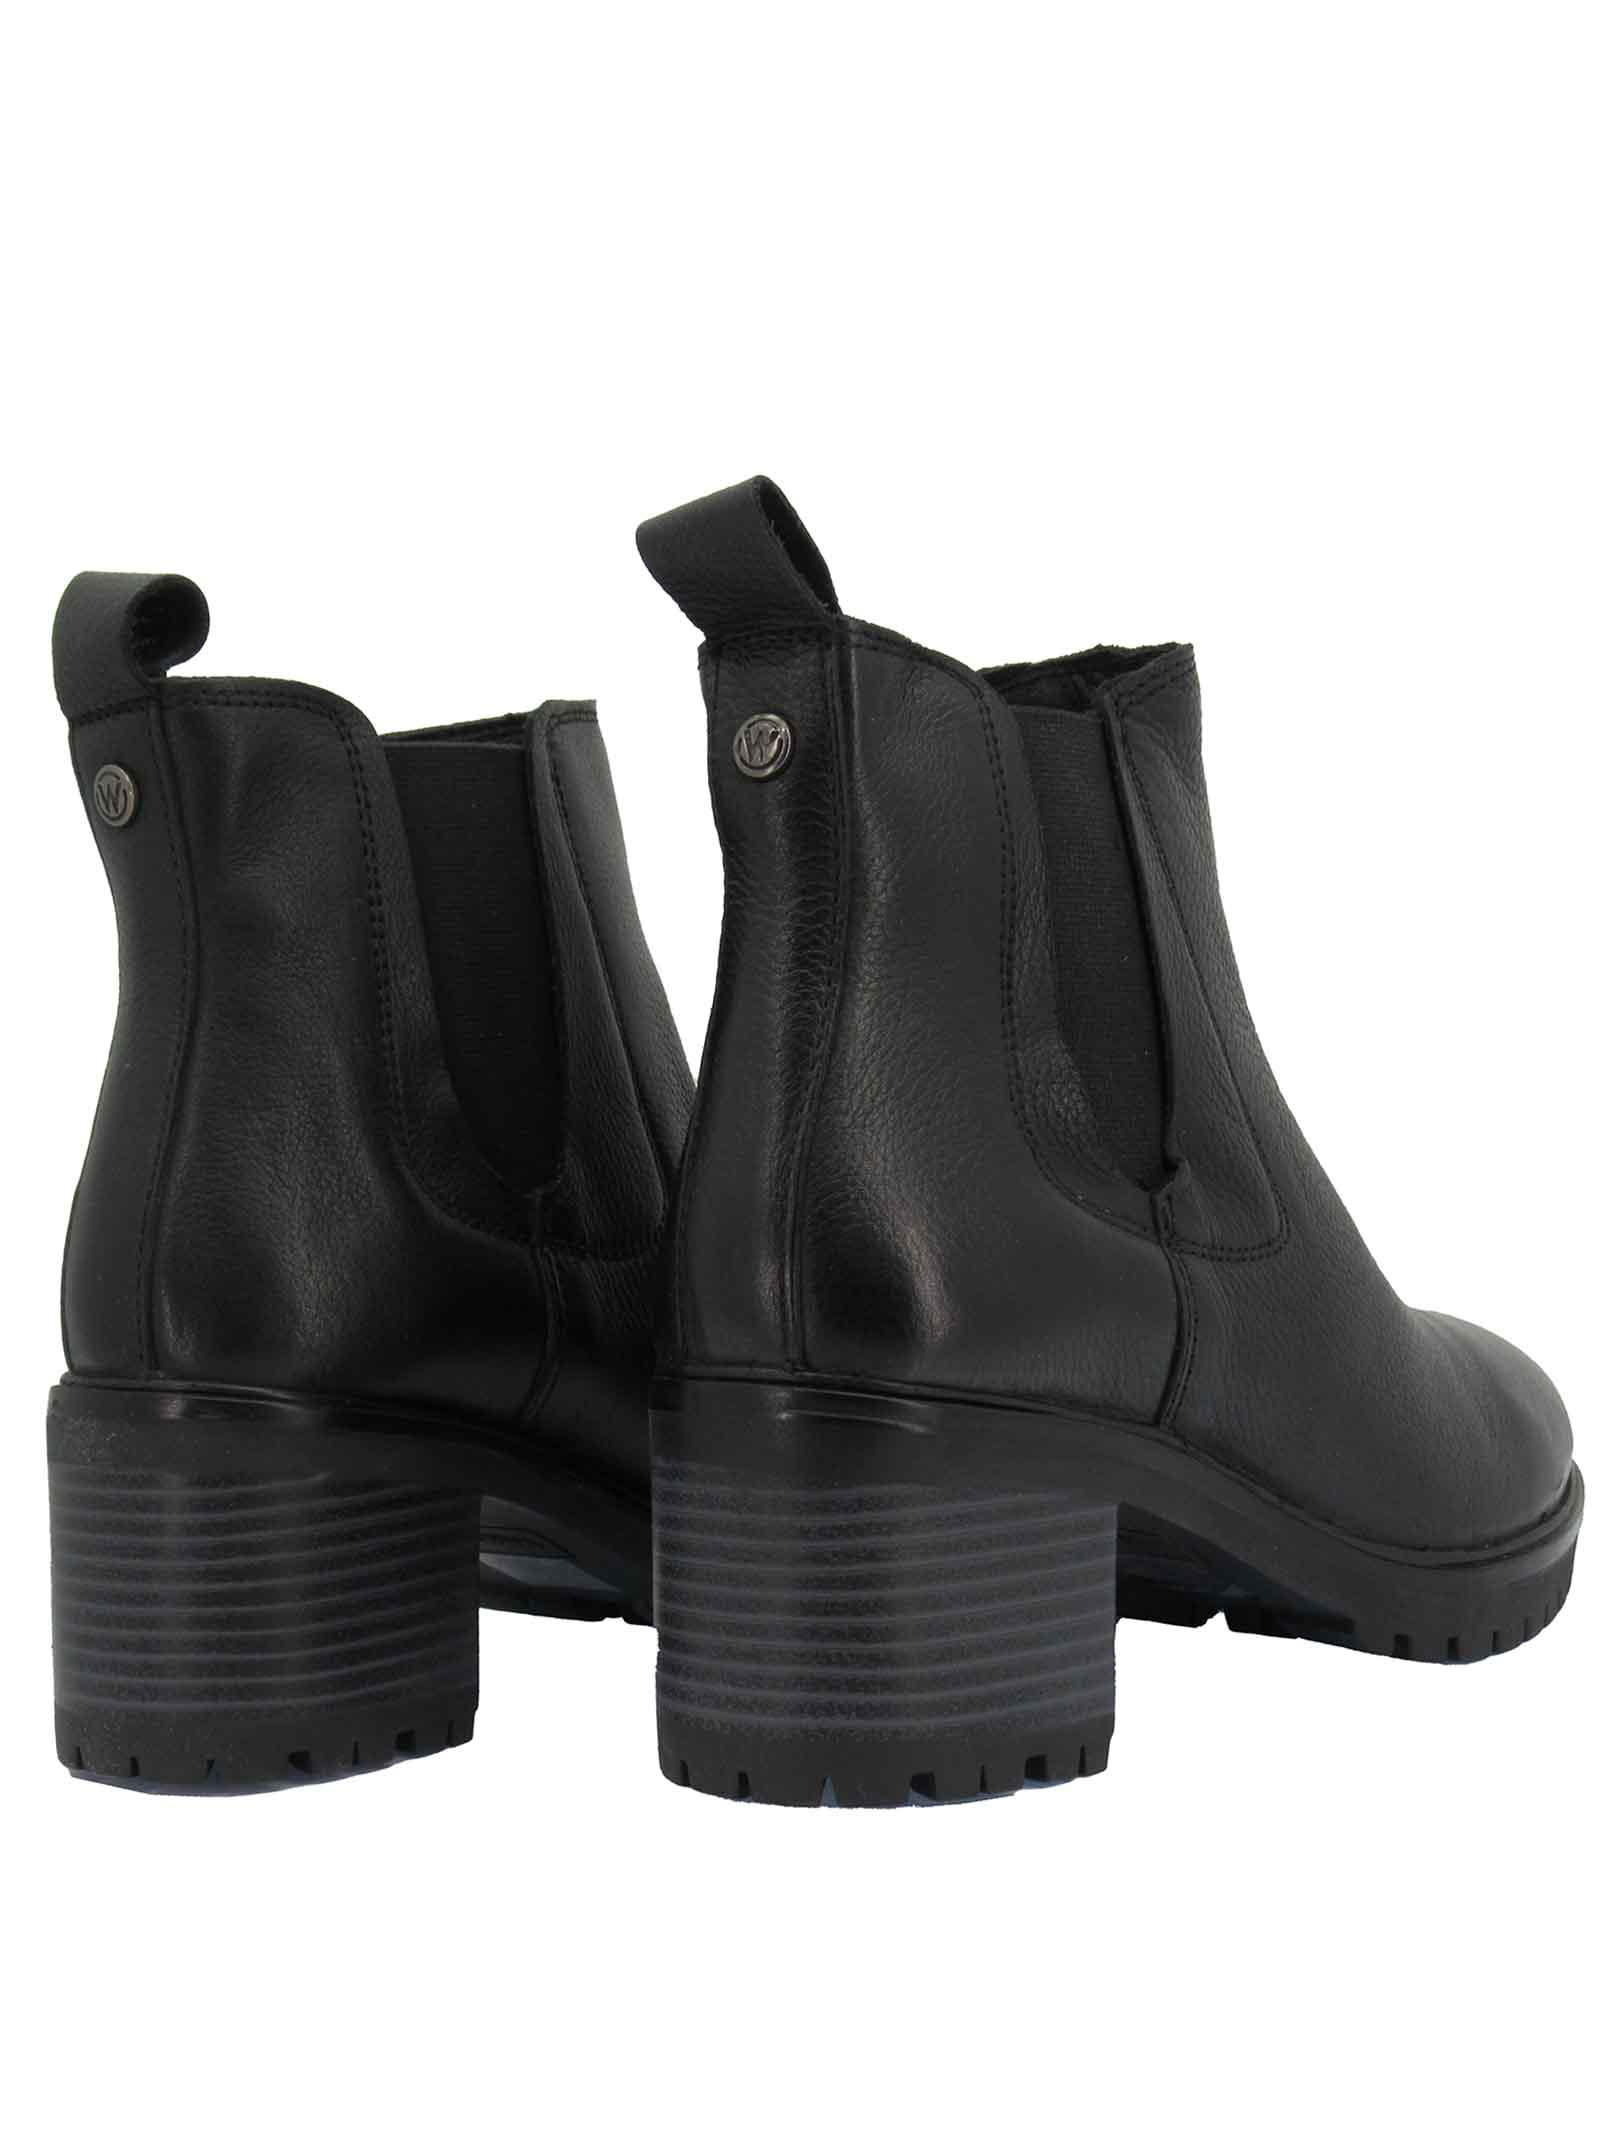 Women's Shoes Ankle Boots Beatles Sierra Chelsea in Black Leather with Medium Heel and Rubber Sole Tank Wrangler | Ankle Boots | WL12513A062